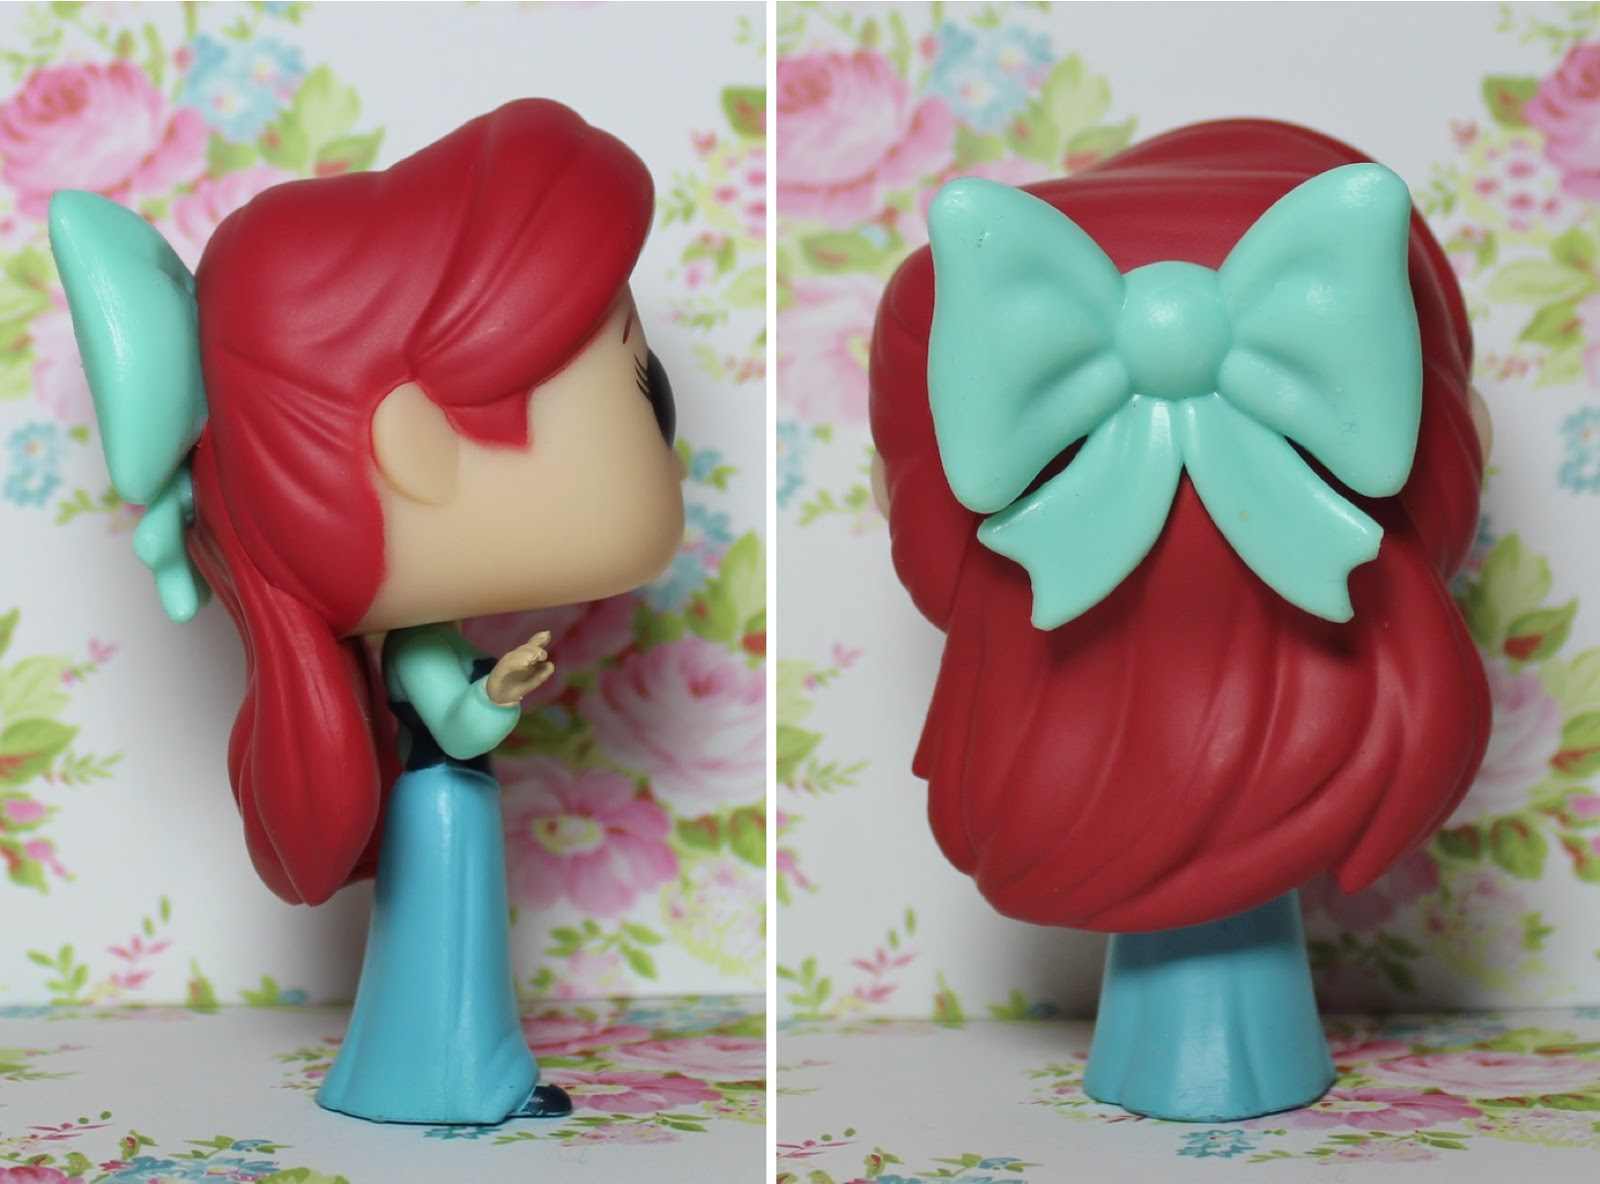 ariel funko pop pop in a box